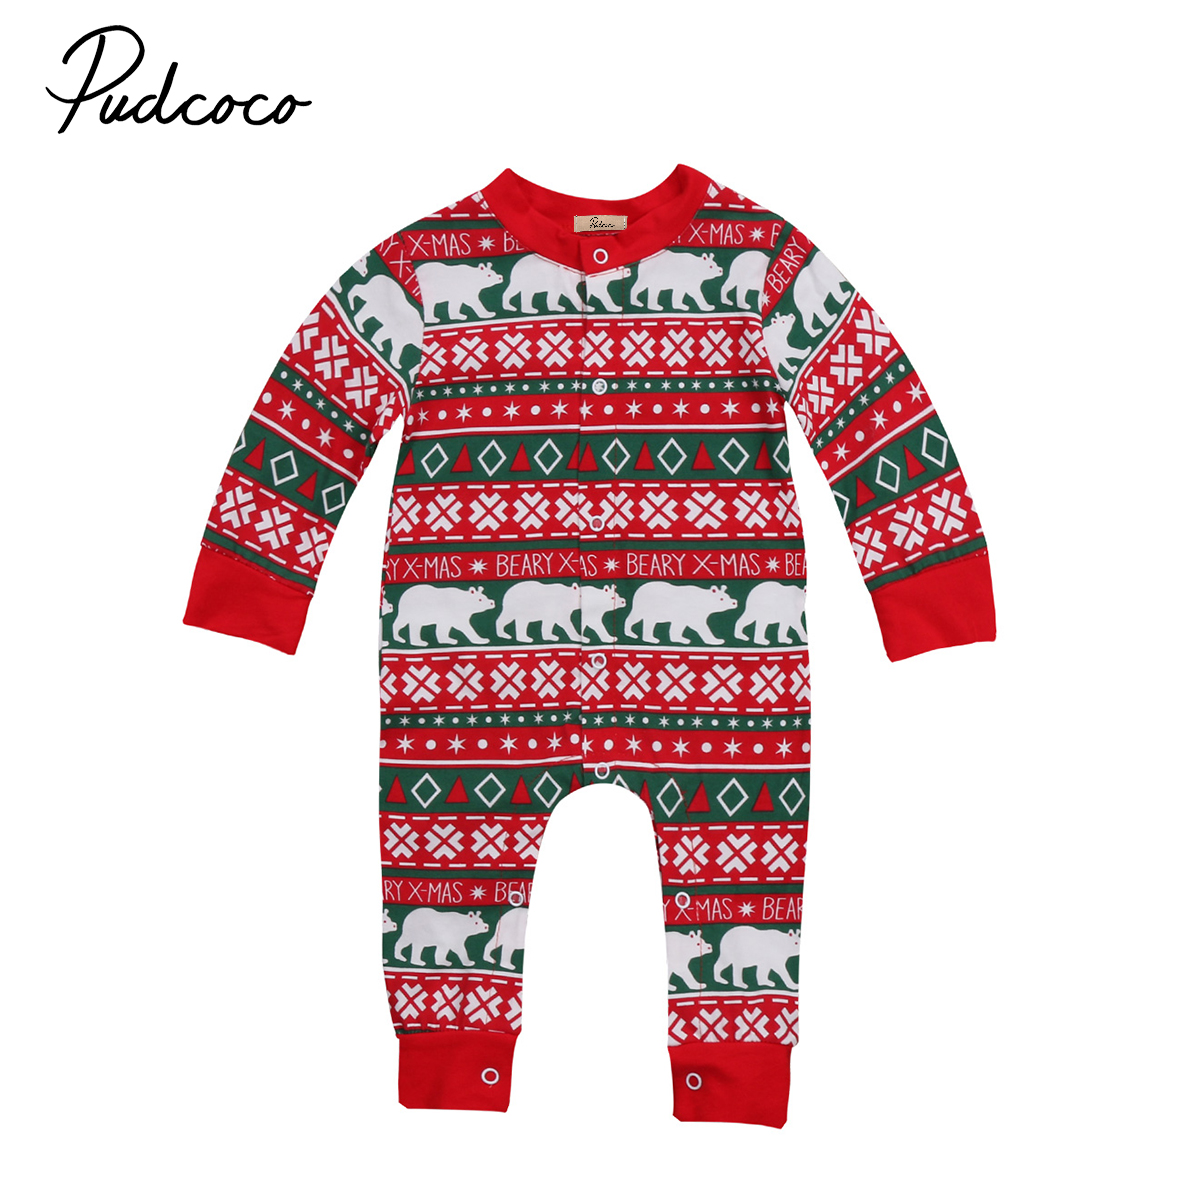 Babies Winter Xmas Romper Clothing Infant Baby Christmas Festivel Warm pjs Rompers Clothes Costume